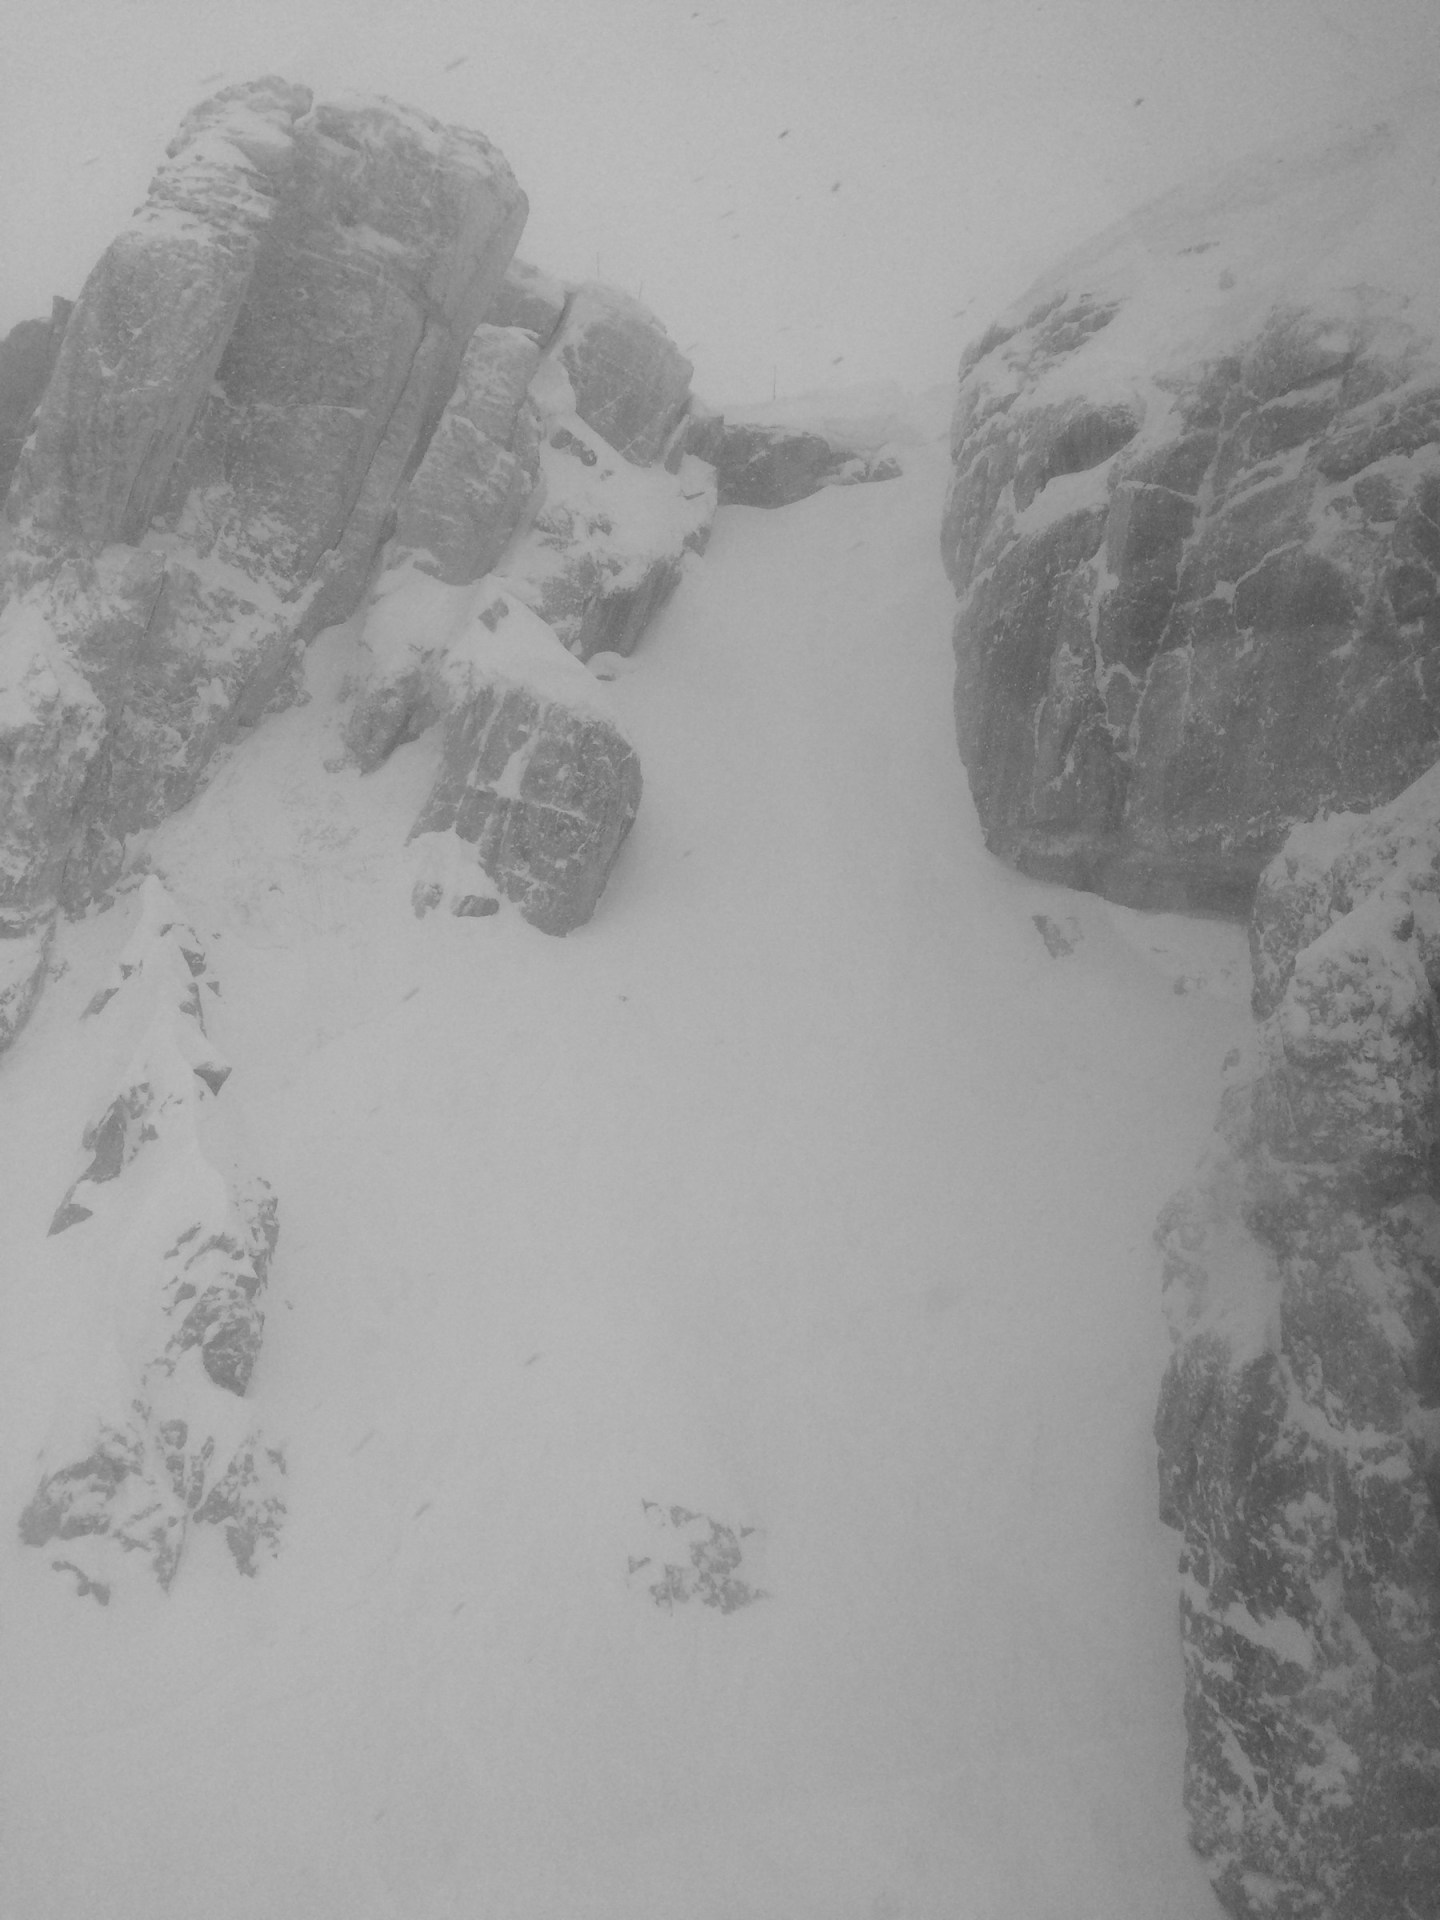 Corbet's Couloir from Jackson Hole's tram